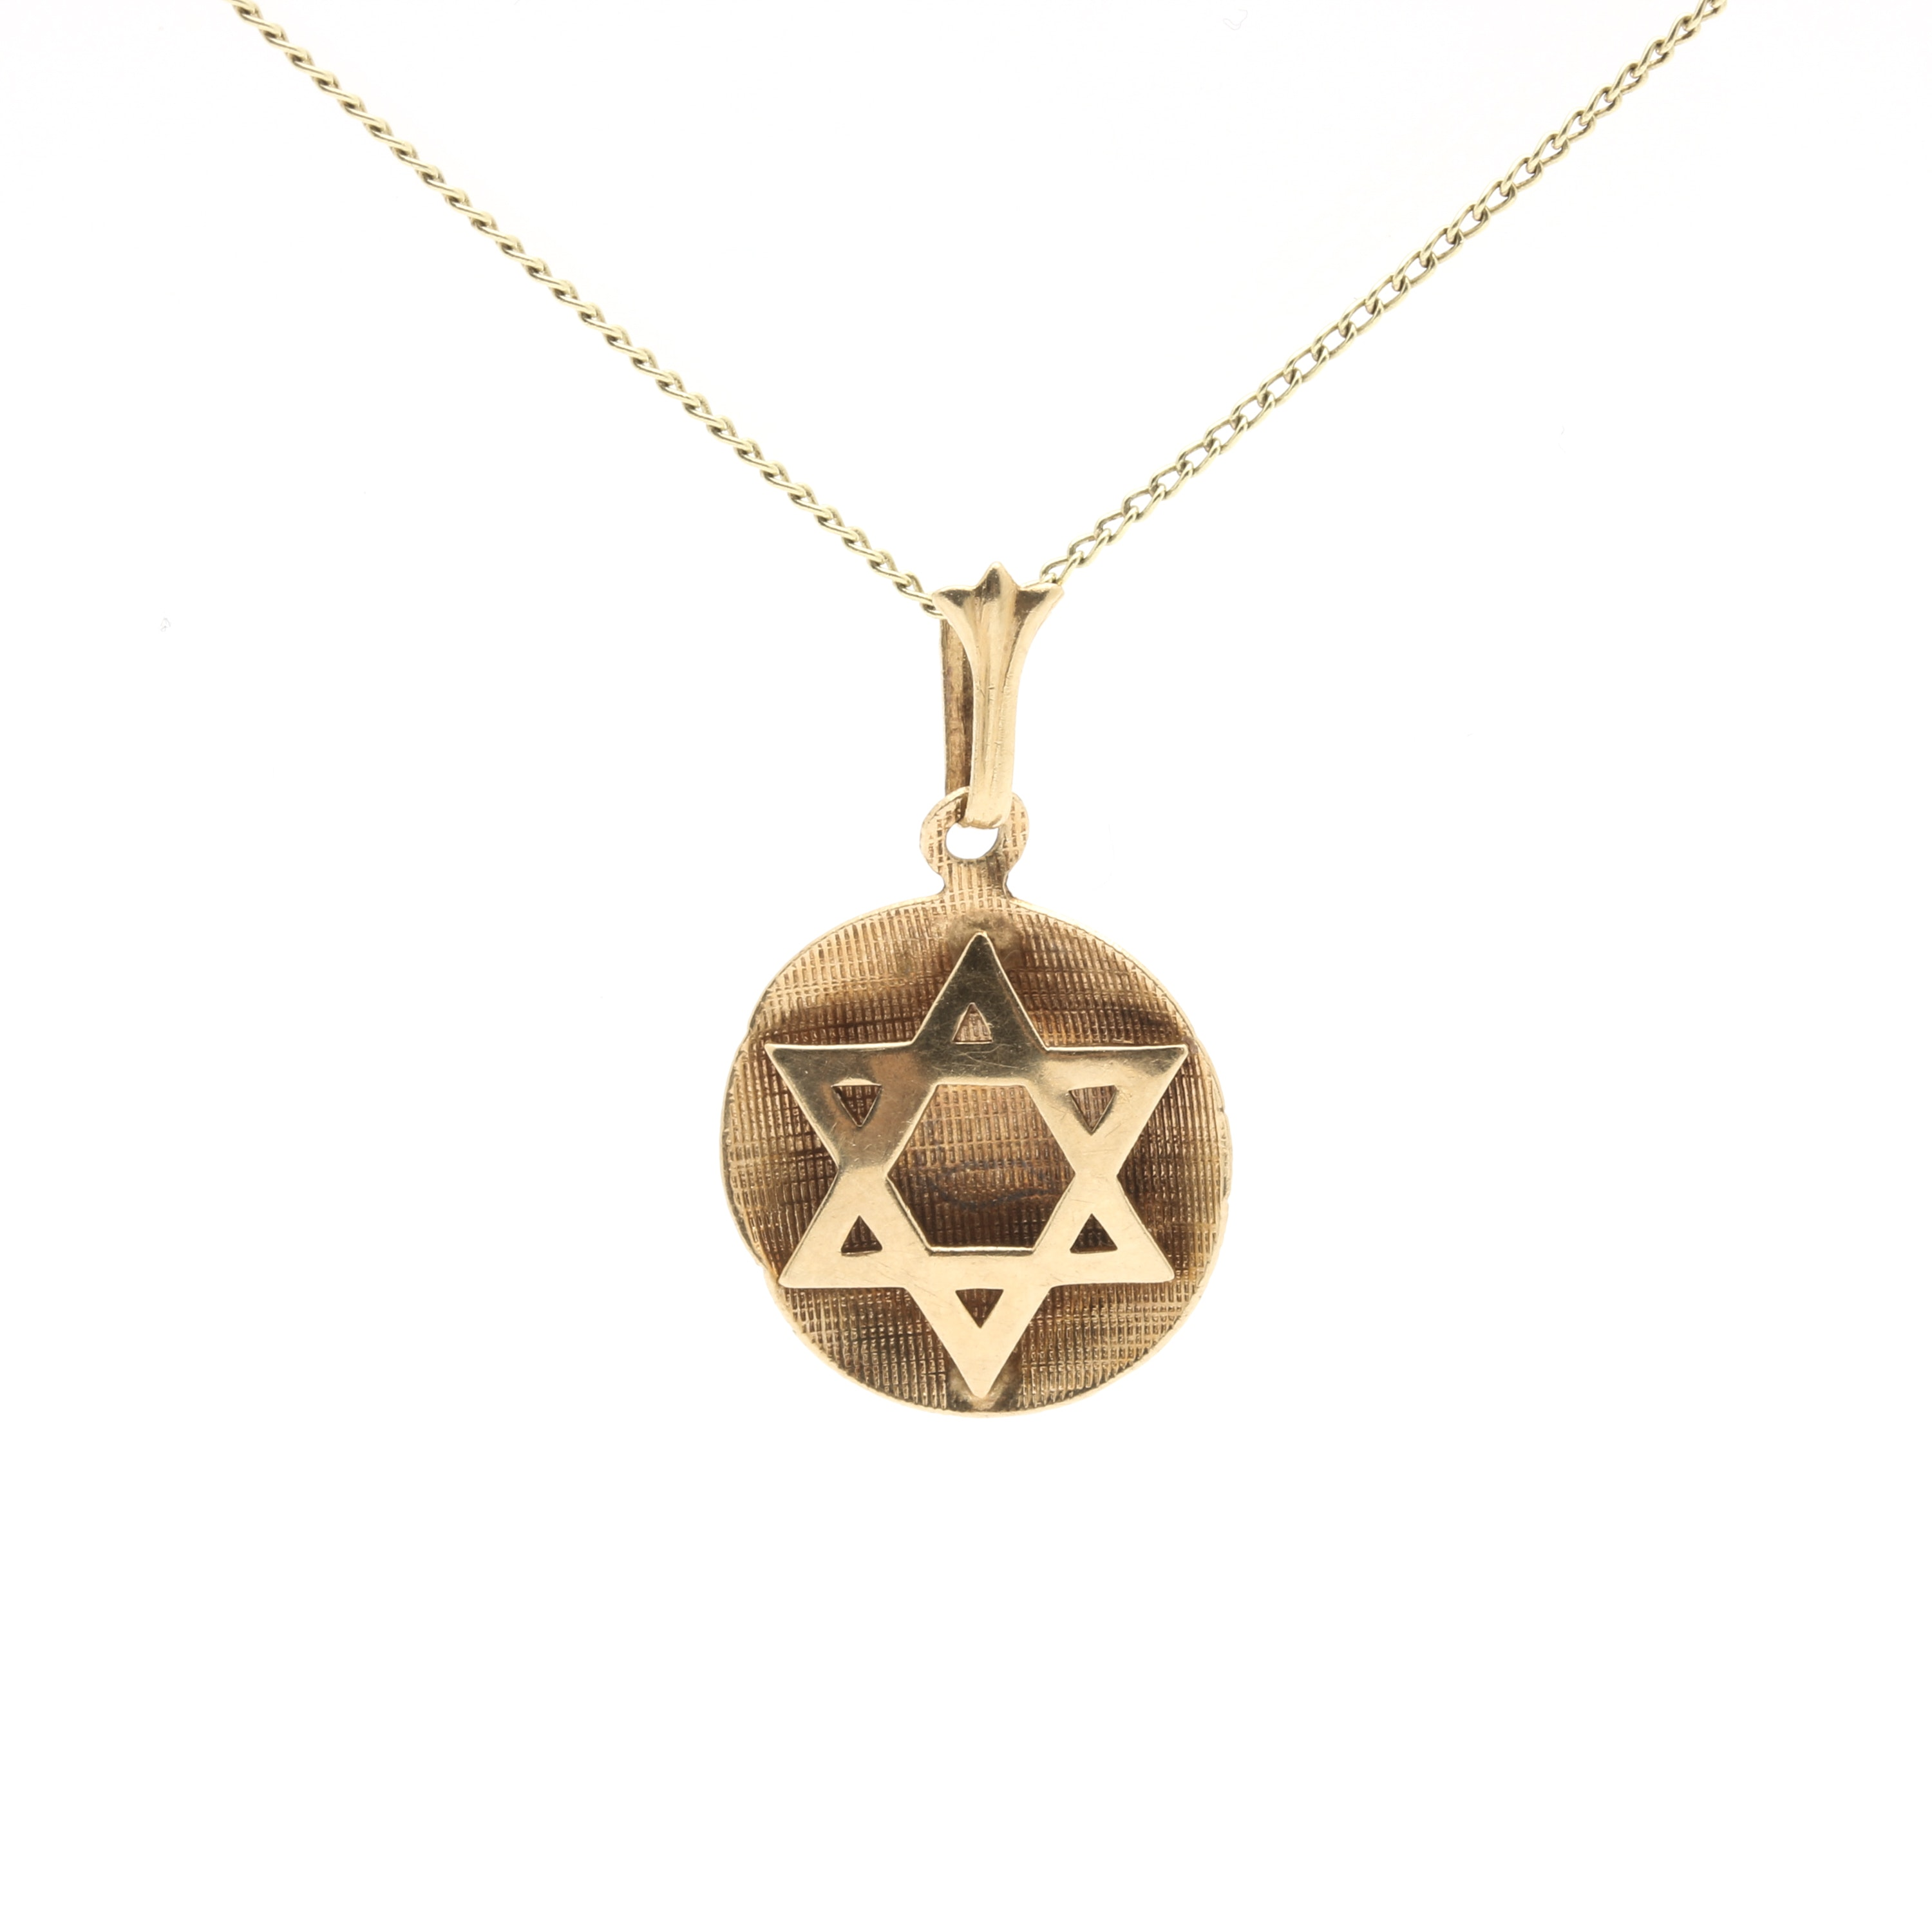 14K Yellow Gold Star of David Pendant Necklace